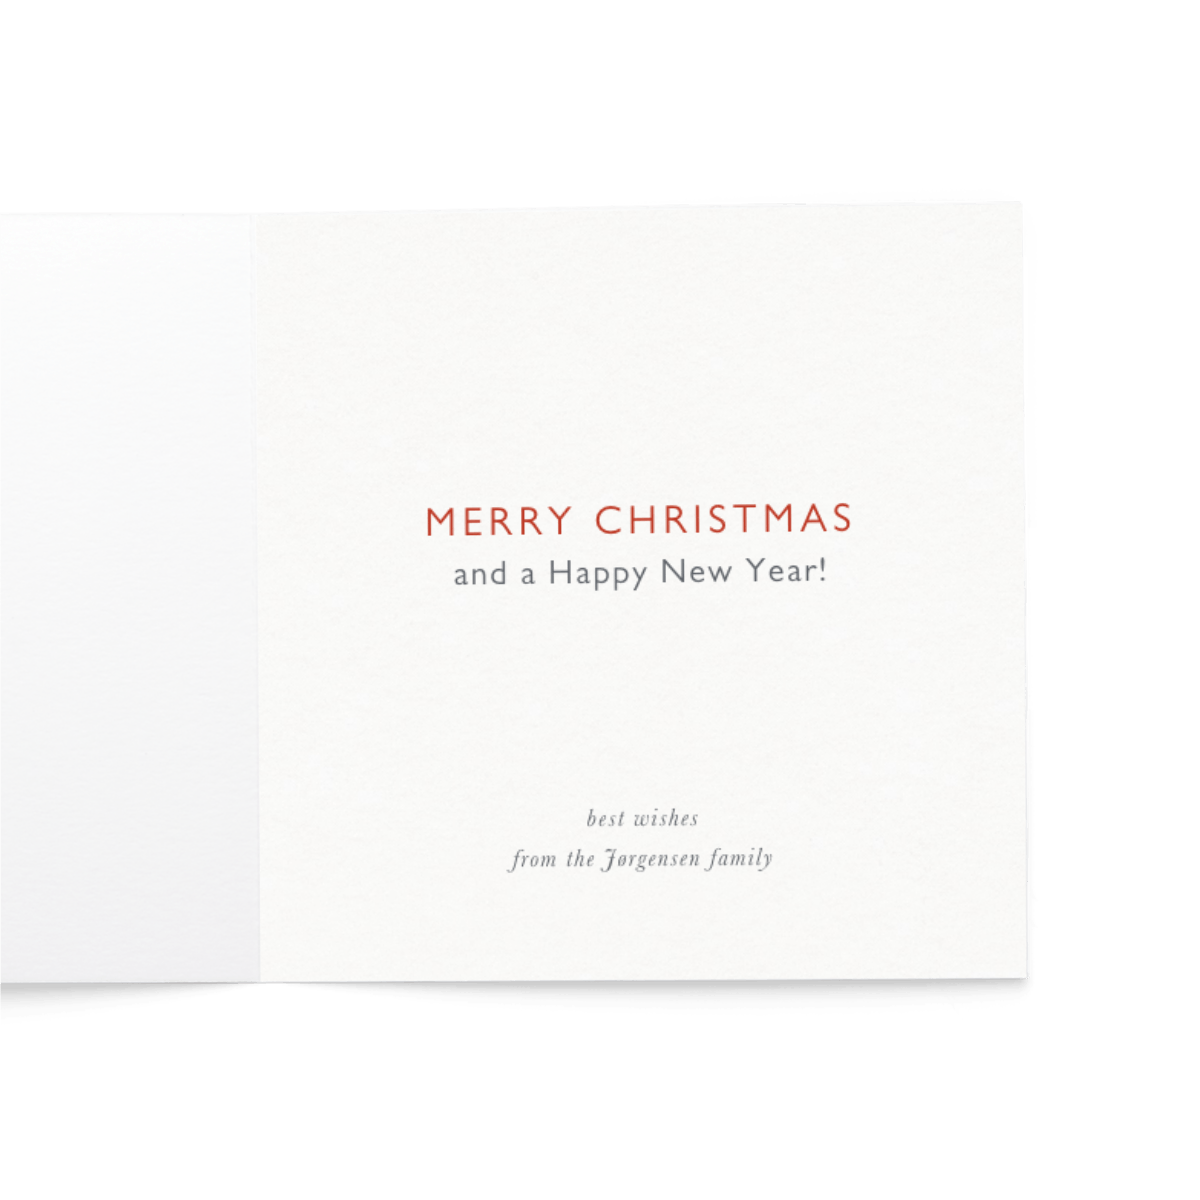 Https%3a%2f%2fwww.papier.com%2fproduct image%2f42339%2f21%2fchristmas fox photo 10836 inside 1567713655.png?ixlib=rb 1.1